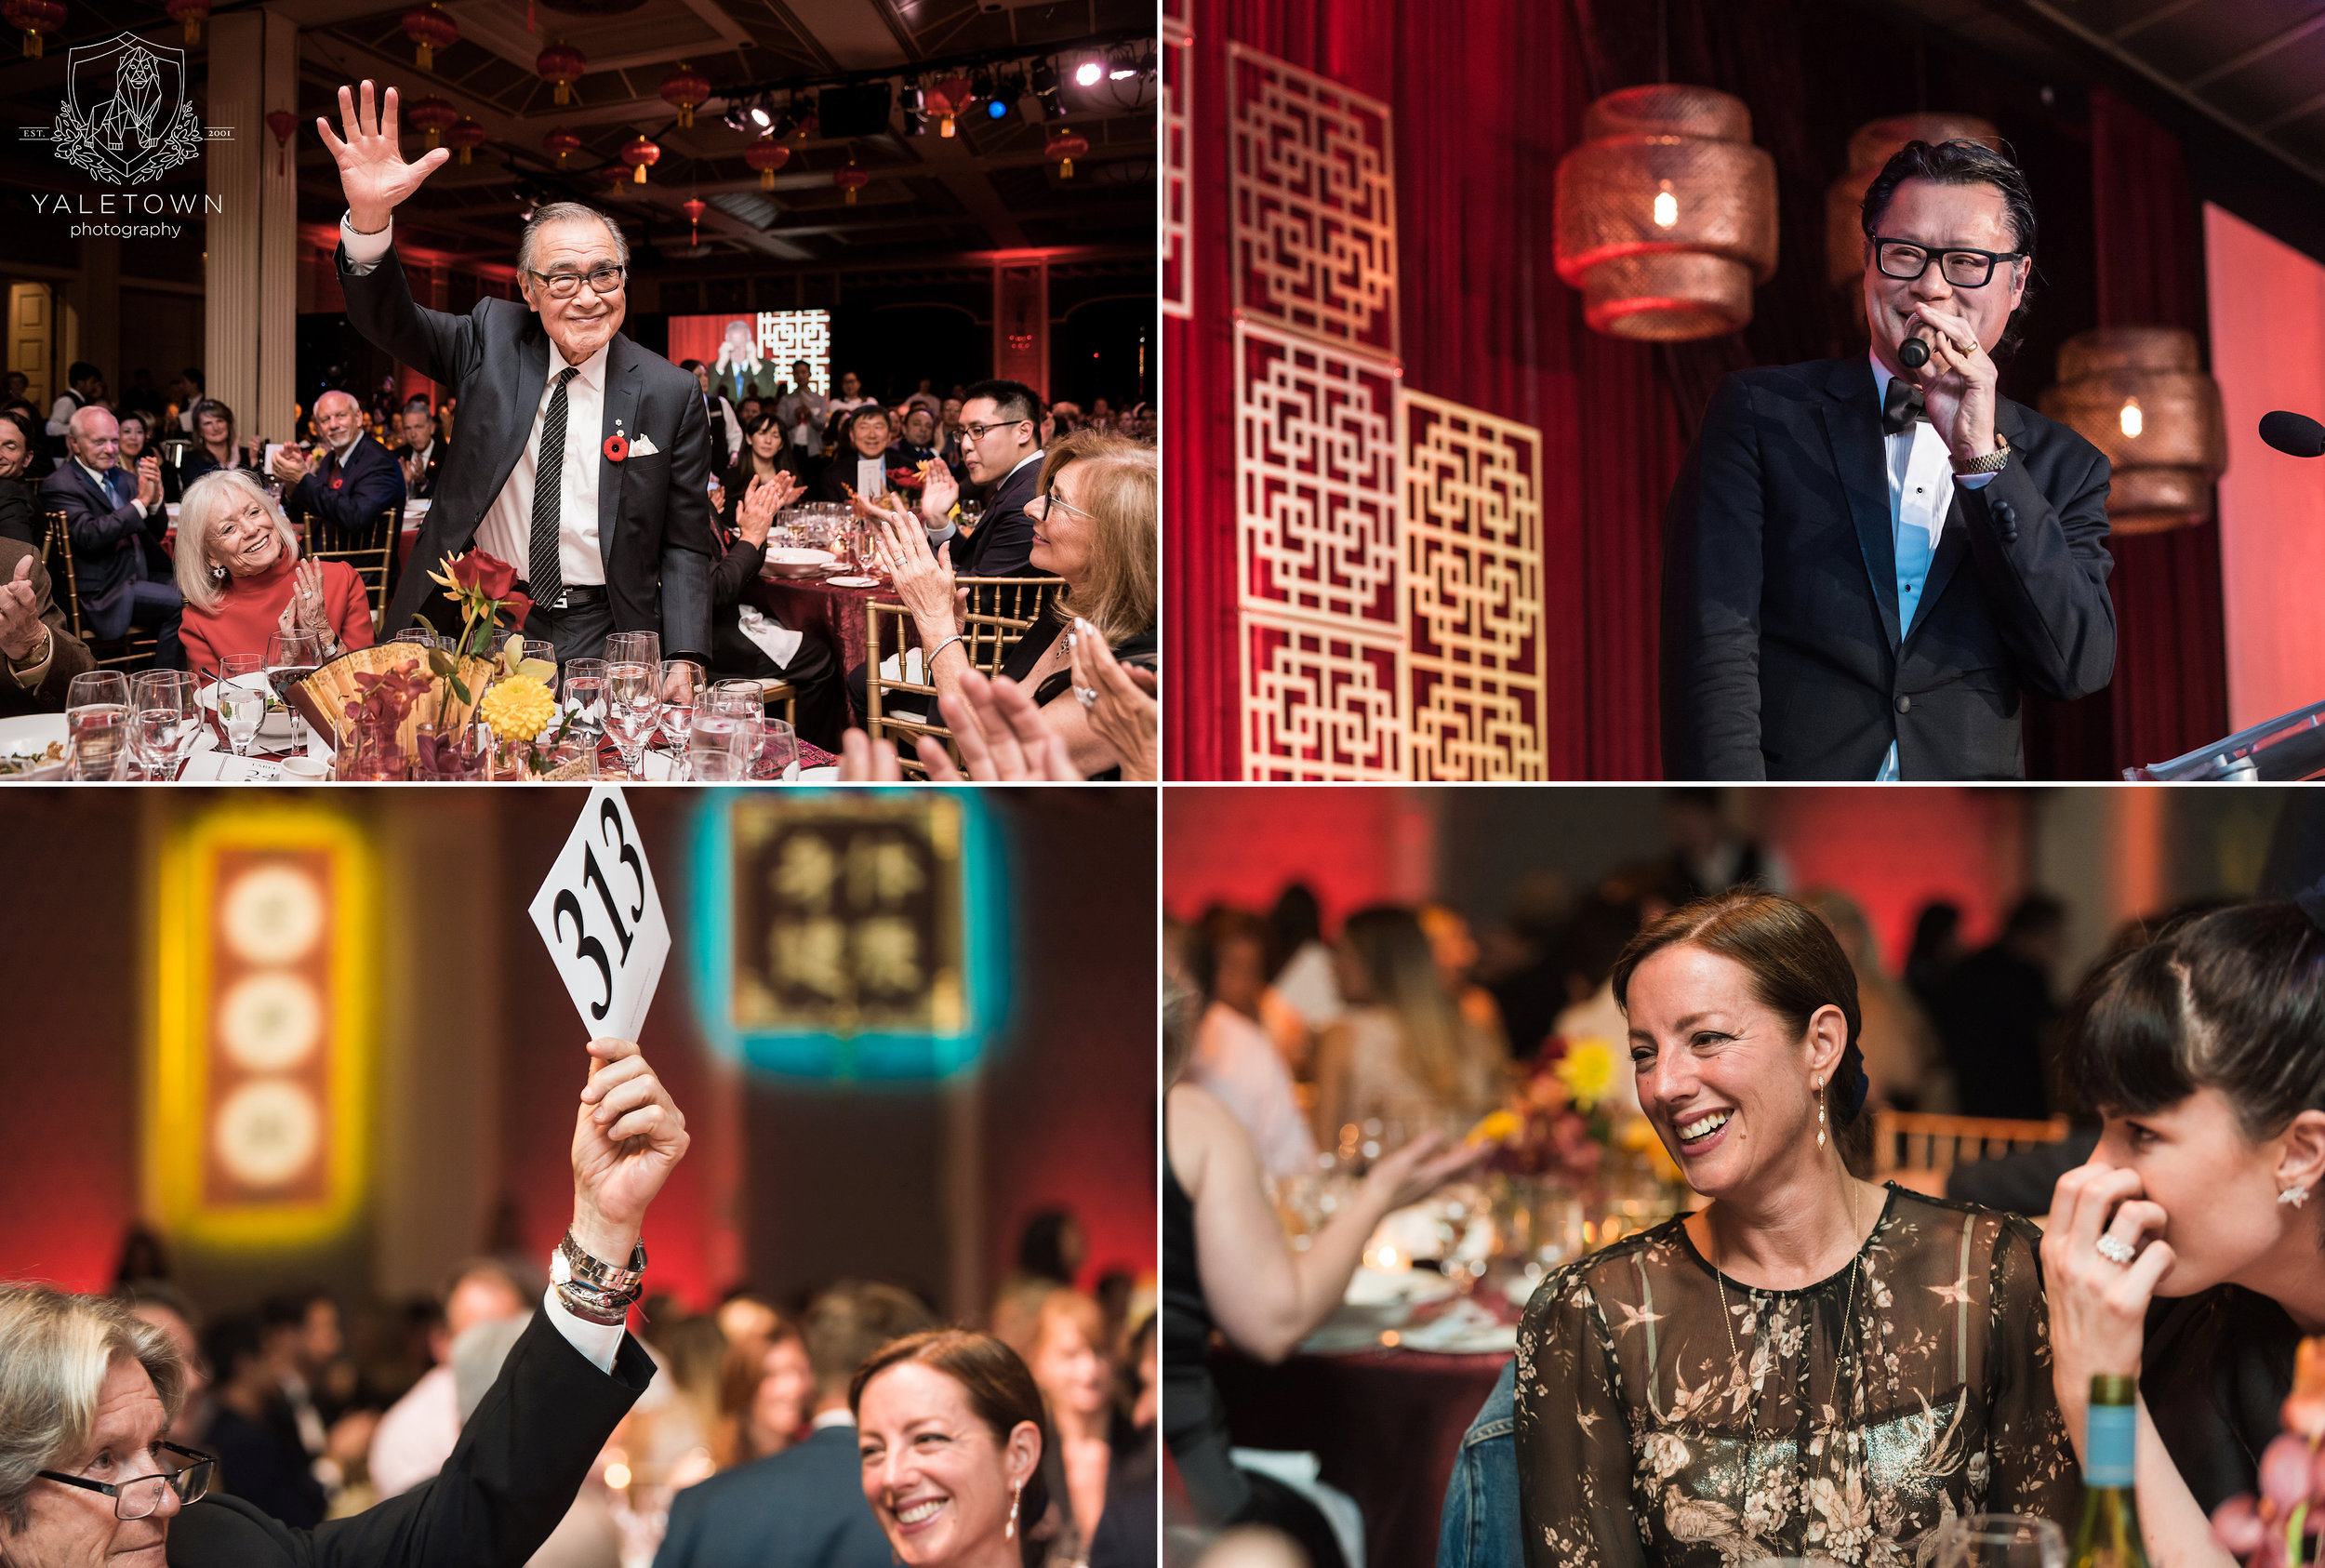 Vancouver-Chinatown-Foundation-Gala-Robert-Lee-Sarah-Mclachlan-Fairmont-Hotel-Vancouver-Yaletown-Photography-Event-Photographer-photo